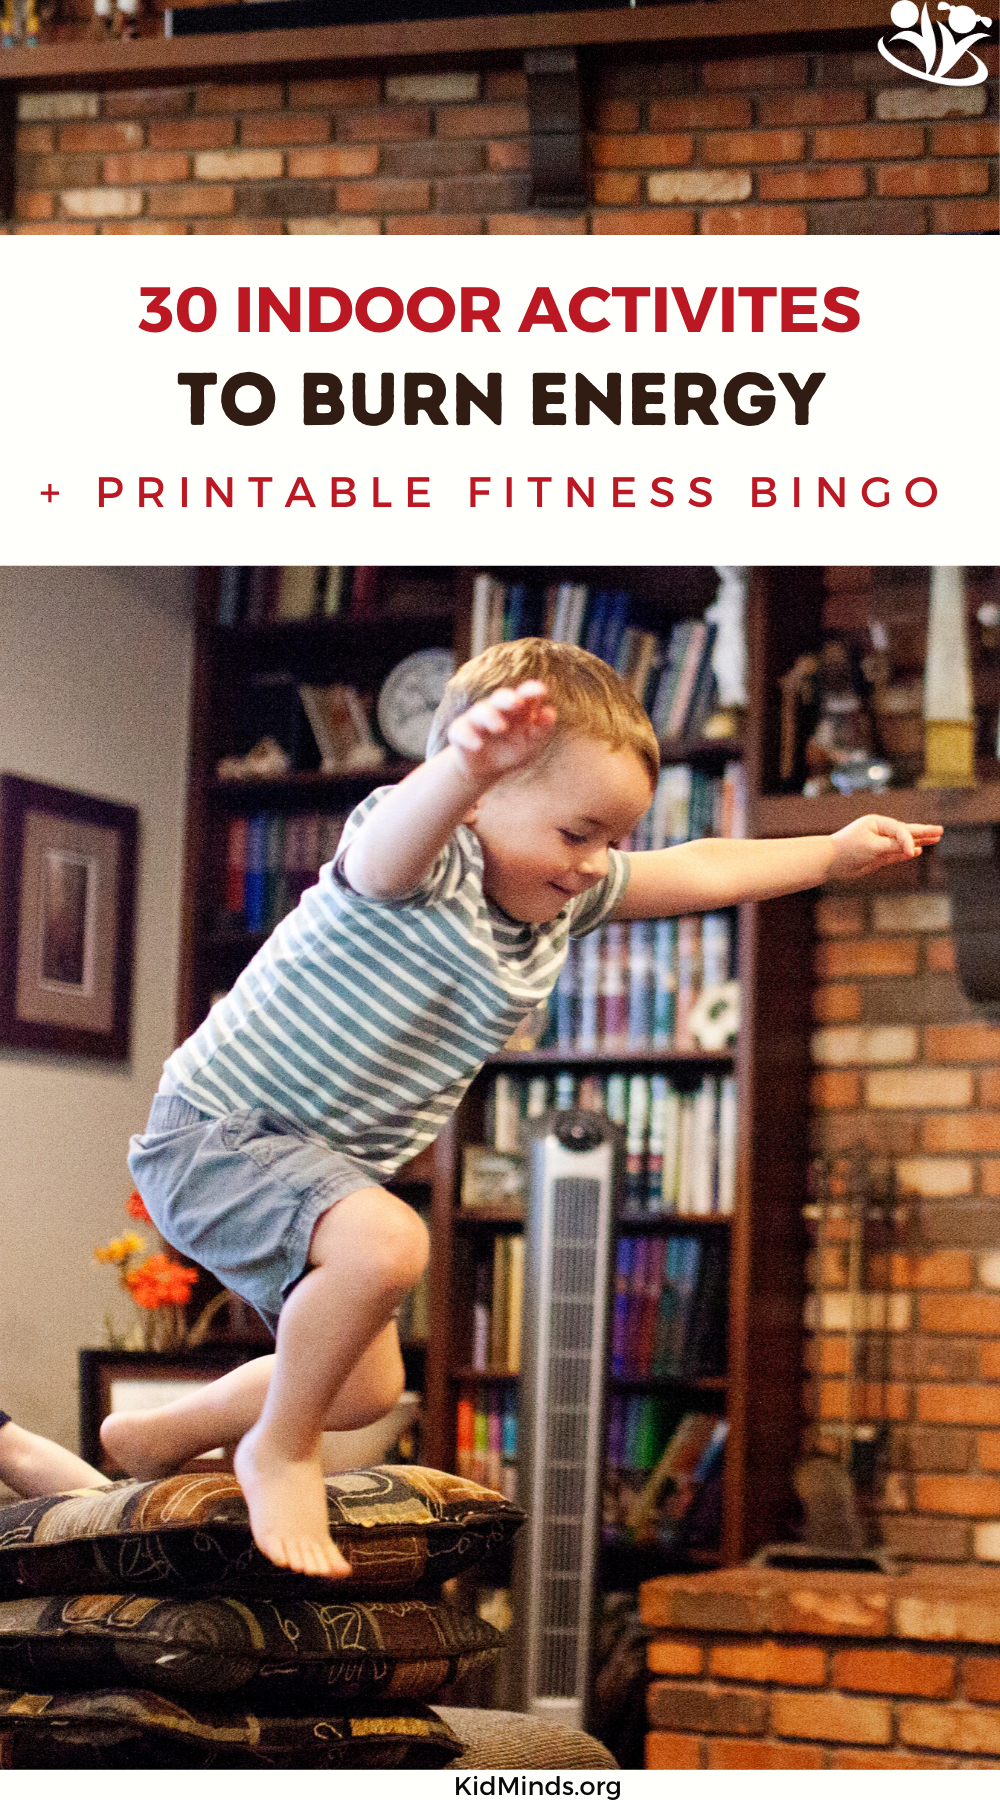 Easy indoor fitness activities to help highly energetic kids burn off some energy and get them moving with a purpose before you lose your mind. #formoms #fitness #indoorgames #activekids